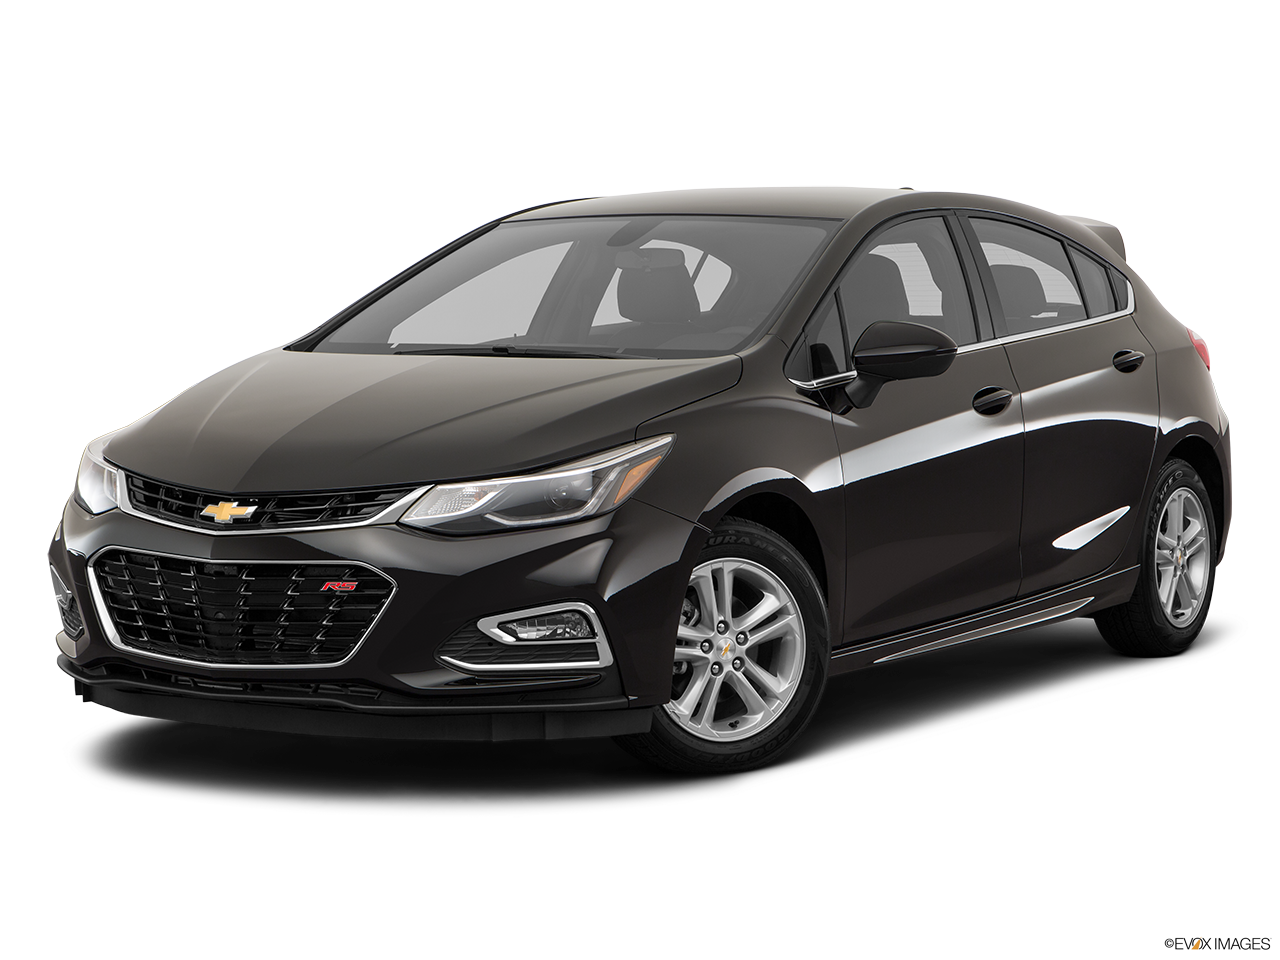 test drive a 2017 chevrolet cruze at champion chevrolet in reno. Cars Review. Best American Auto & Cars Review